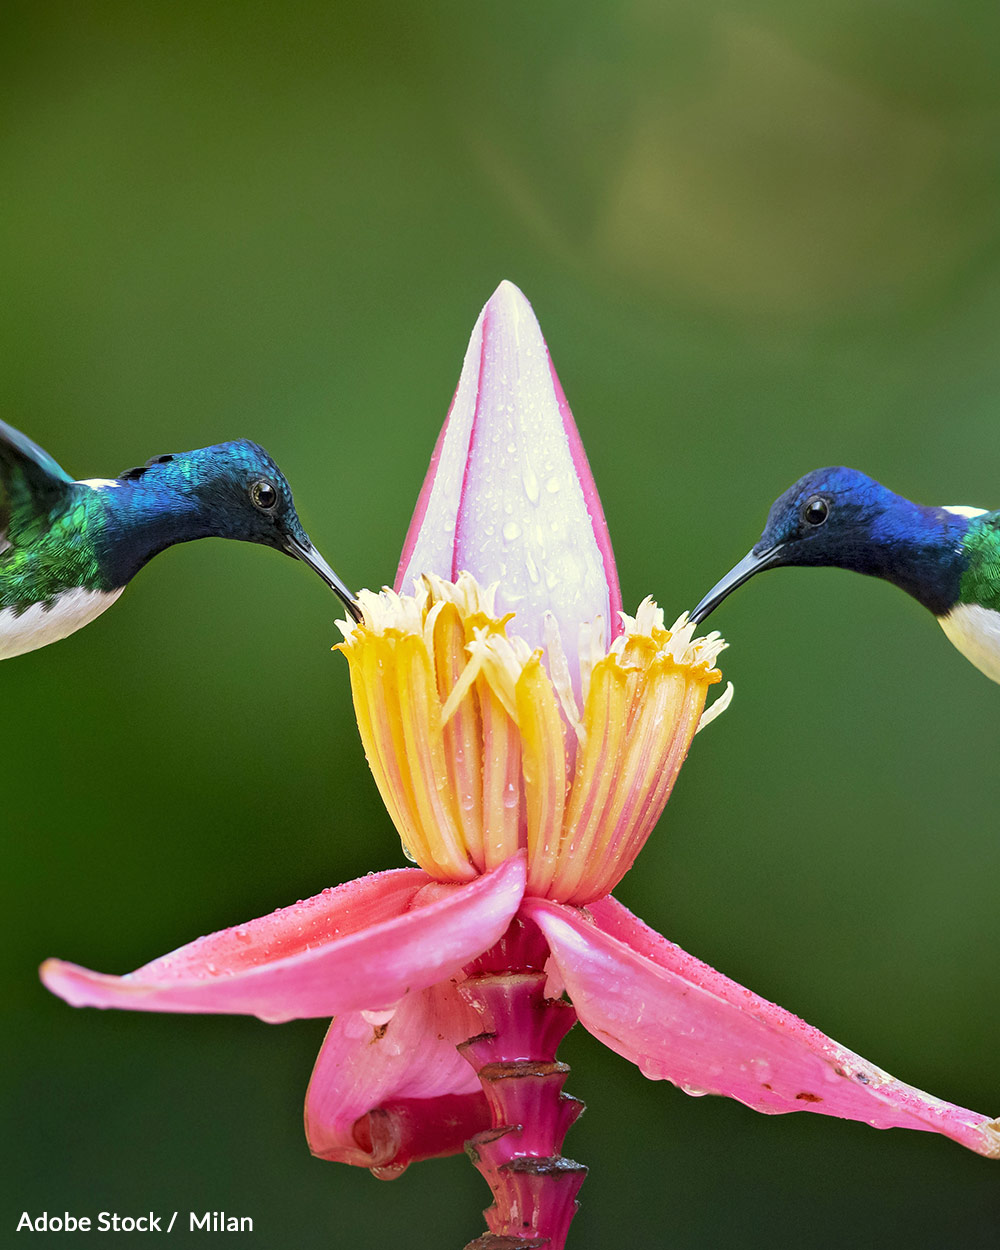 Hummingbird habitats are disappearing as our planet's average temperatures rise.